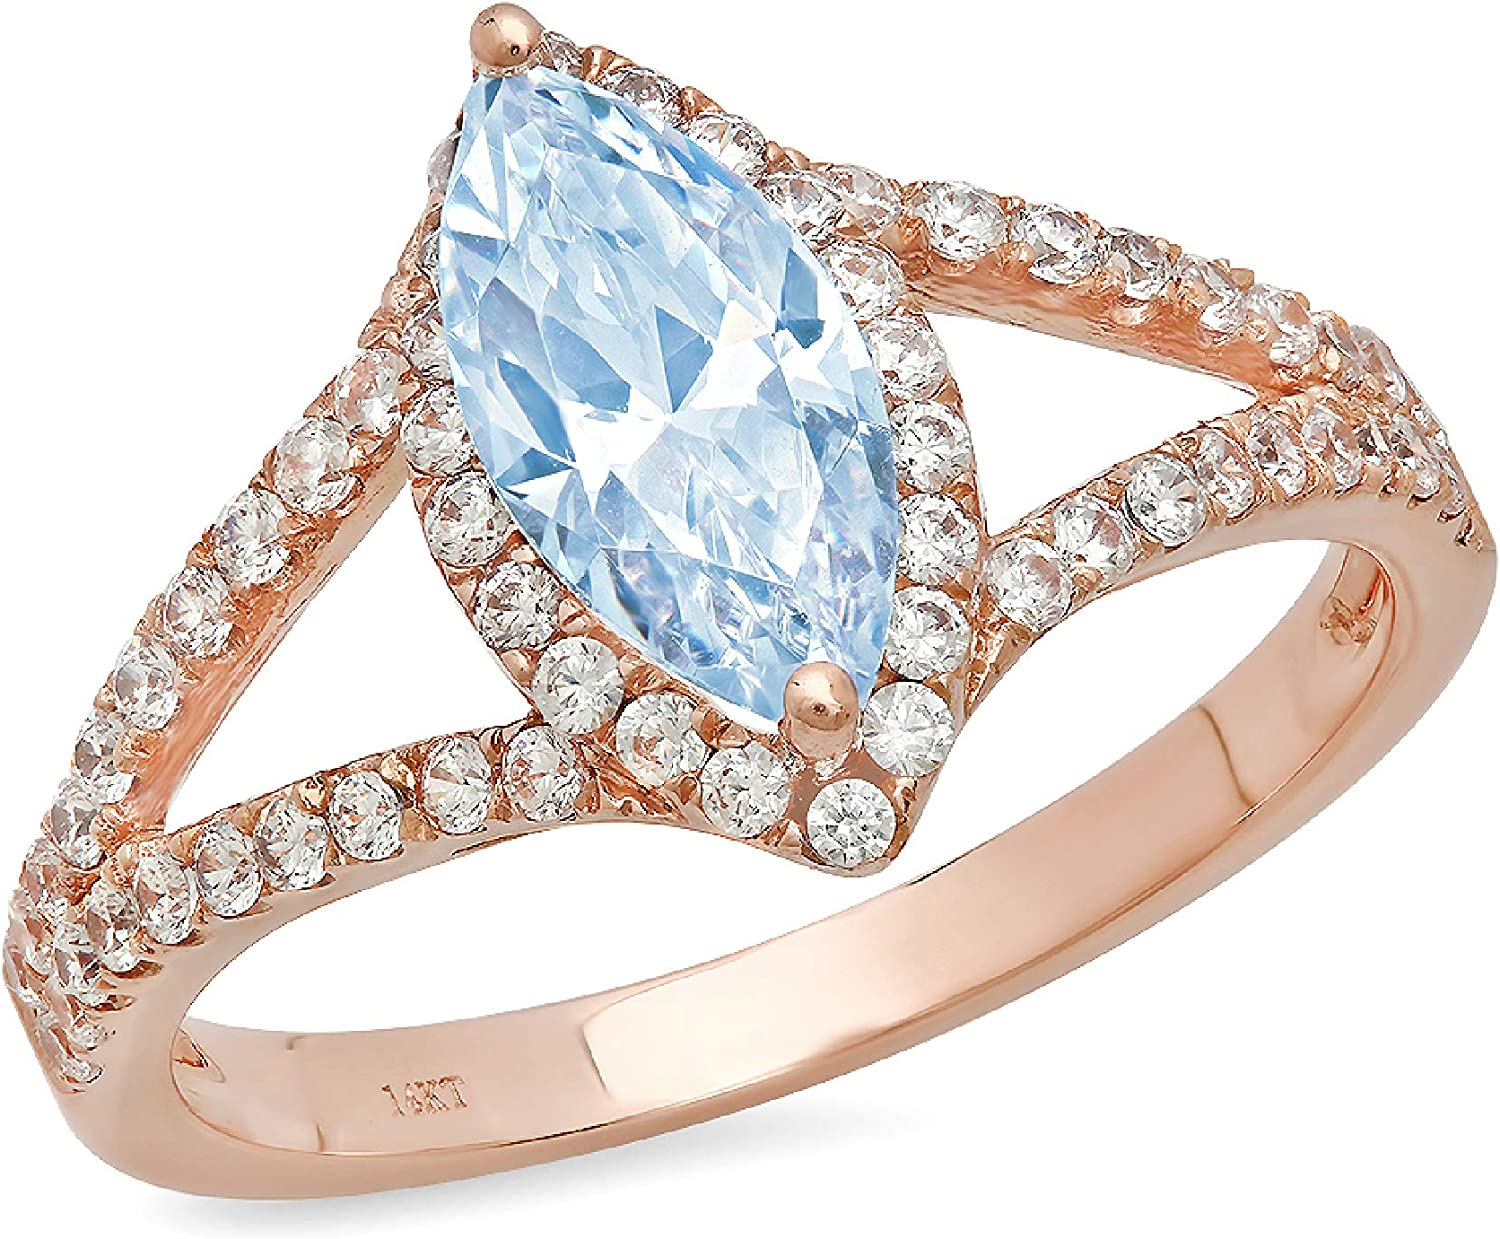 1.20 ct Marquise Cut Solitaire with Accent split shank Halo Natural Topaz Gem Stone Ideal VVS1 Engagement Promise Statement Anniversary Bridal Wedding Ring 14k Rose Gold